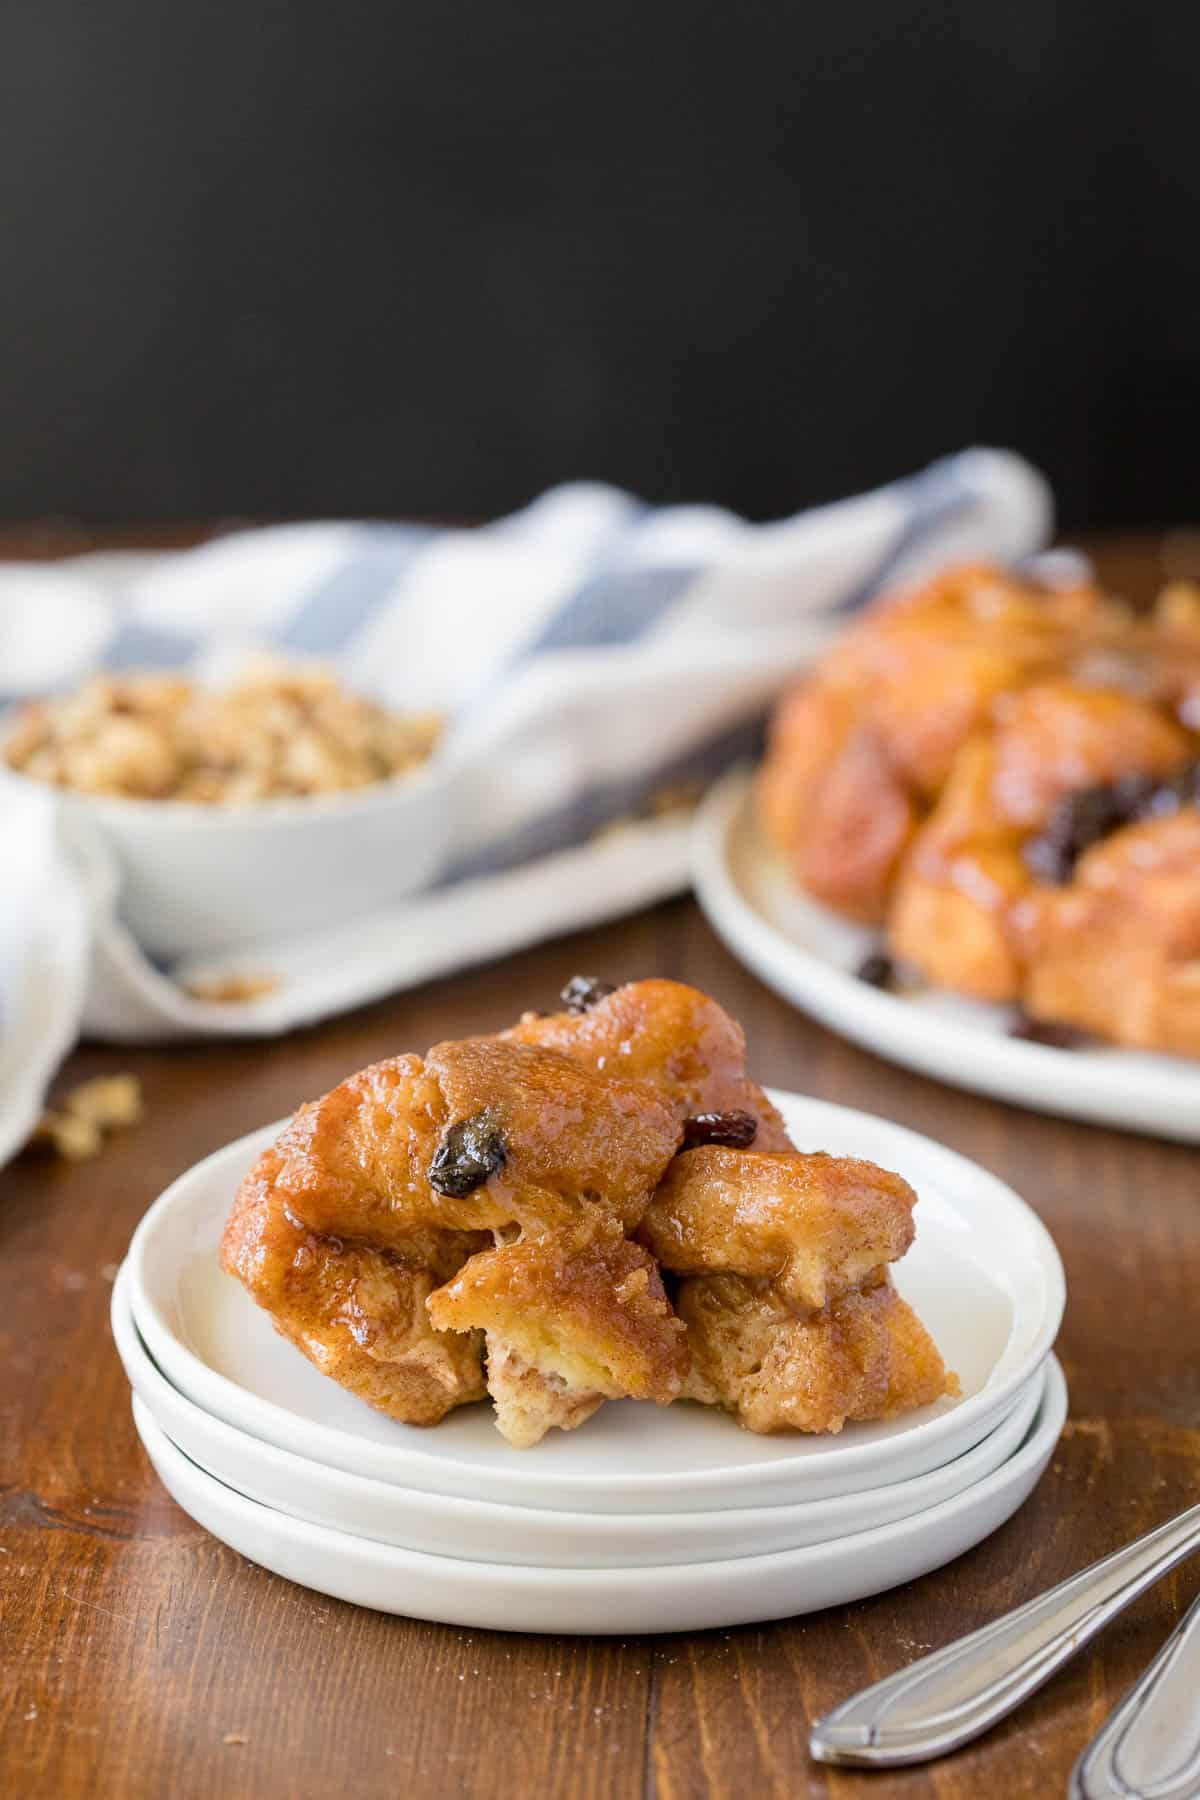 Classic Monkey Bread Recipe - Easy pull-apart bread swimming with walnuts, raisins, and a sweet glaze. Made for breakfast or dessert!